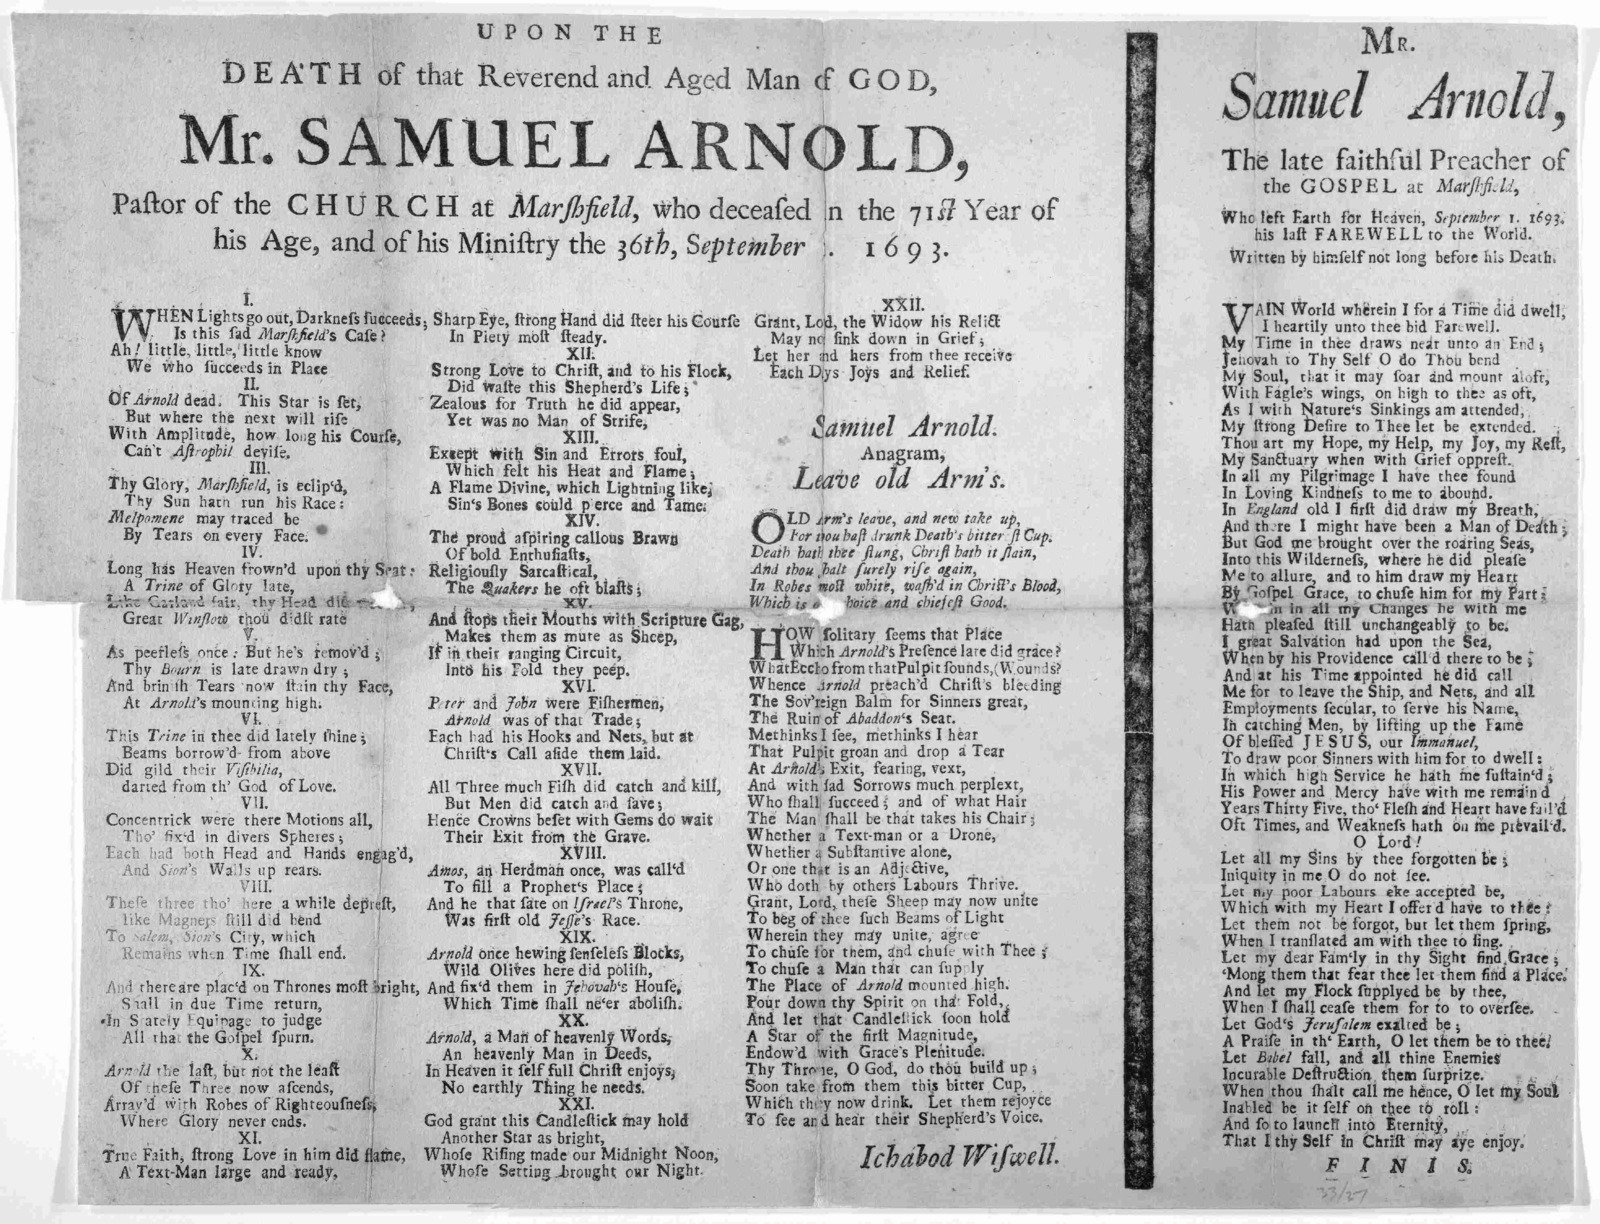 Upon the death of that Reverend and aged man of God, Mr. Samuel Arnold, pastor of the church at Marshfield, who deceased in the 71st year of his age, and of his ministry the 36th September 1, 1693. [1693].